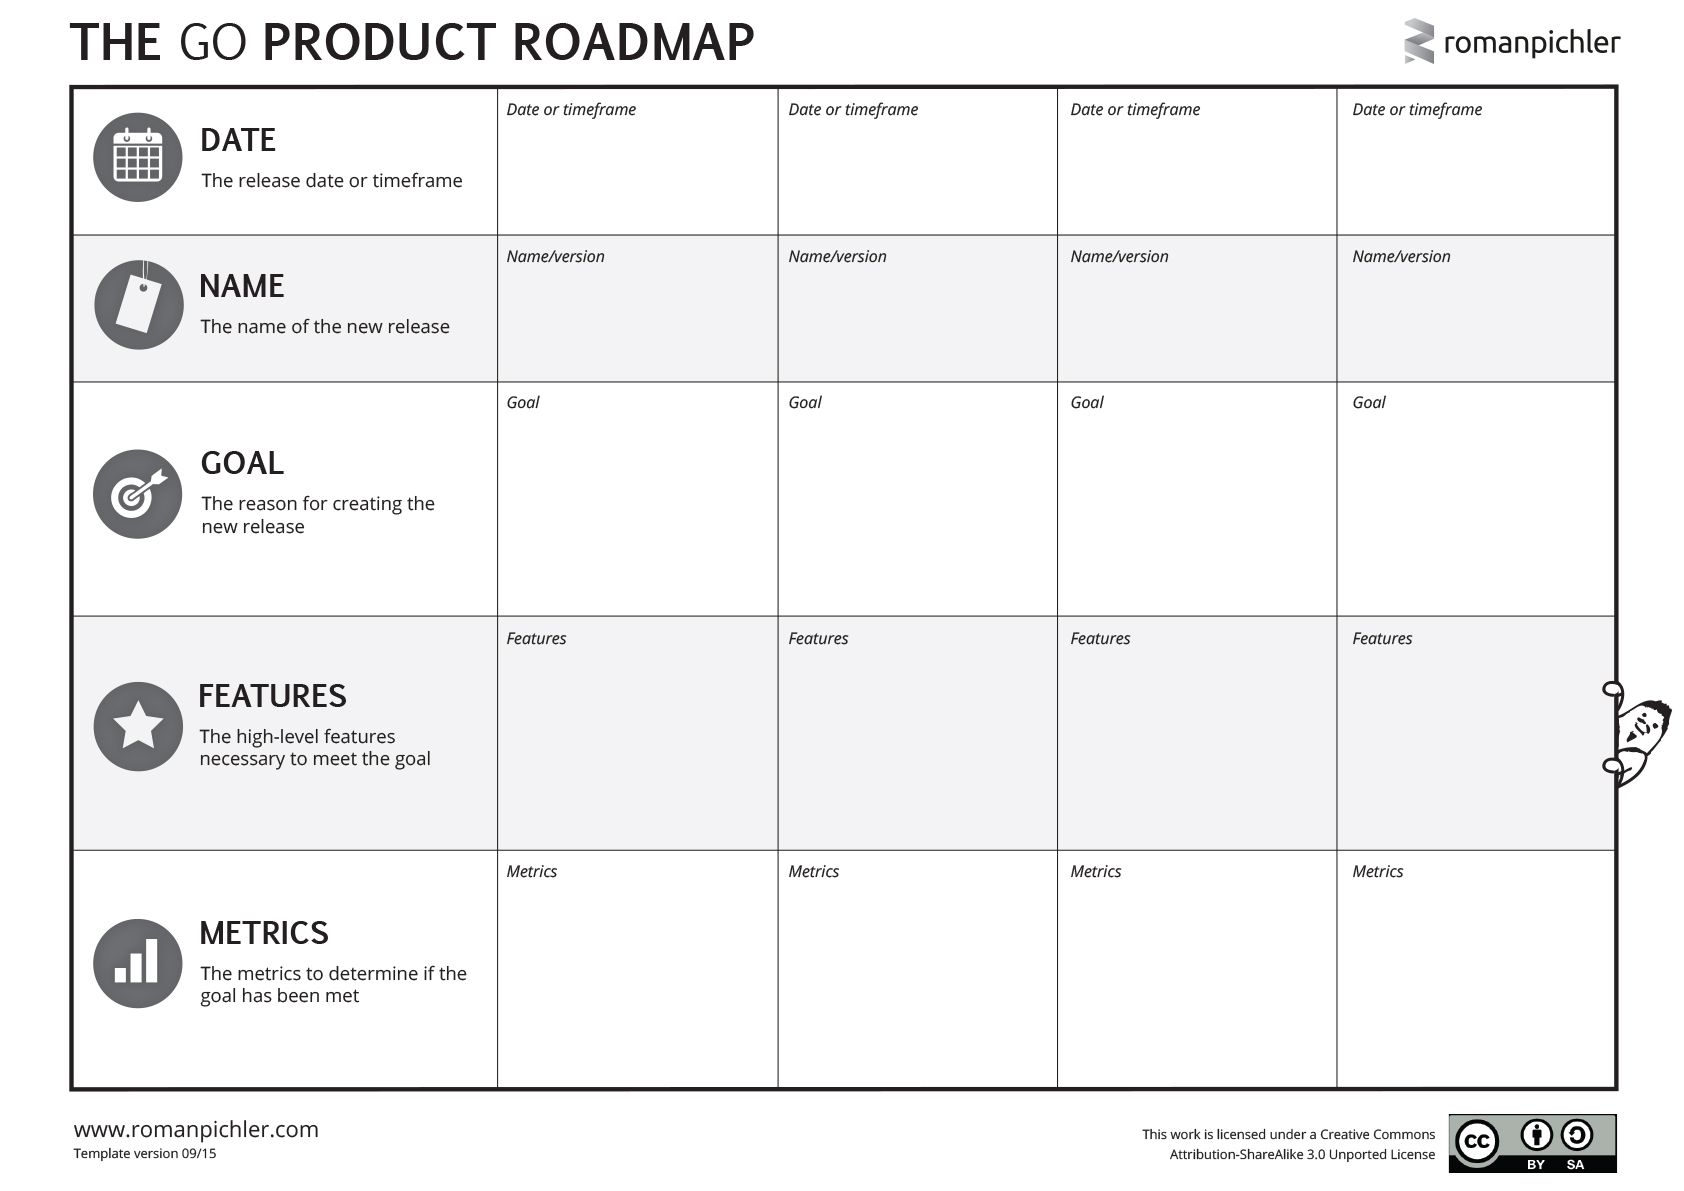 GO Product Roadmap Download Roman Pichler ORGANIZE Pinterest - Lean roadmap template